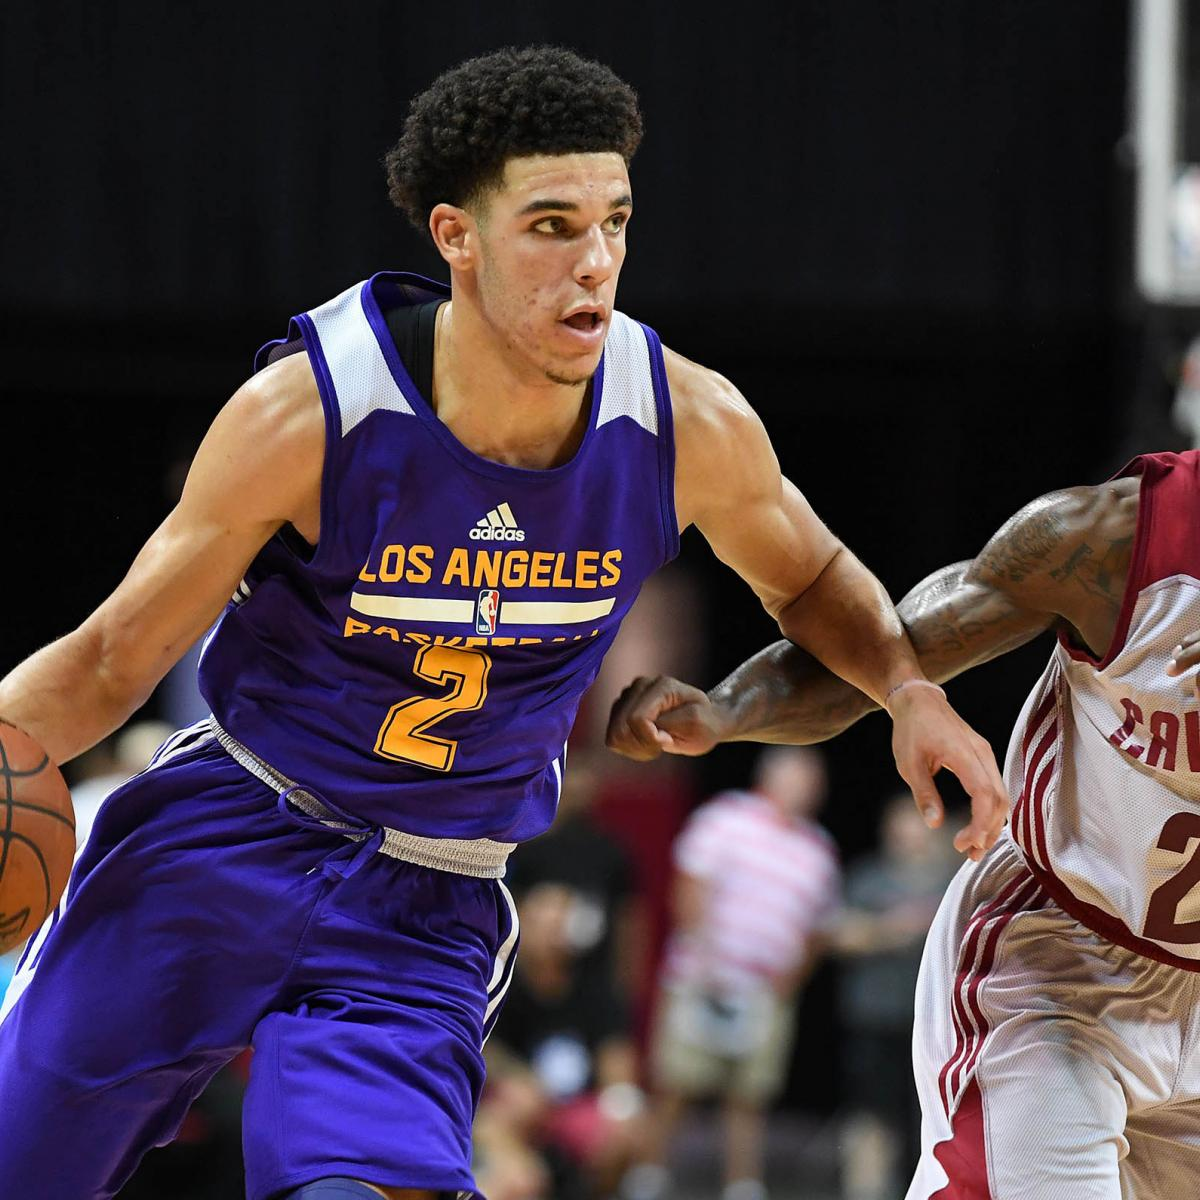 Blazers Vs Lakers: NBA Summer League 2017: Lakers Vs. Blazers TV Schedule And